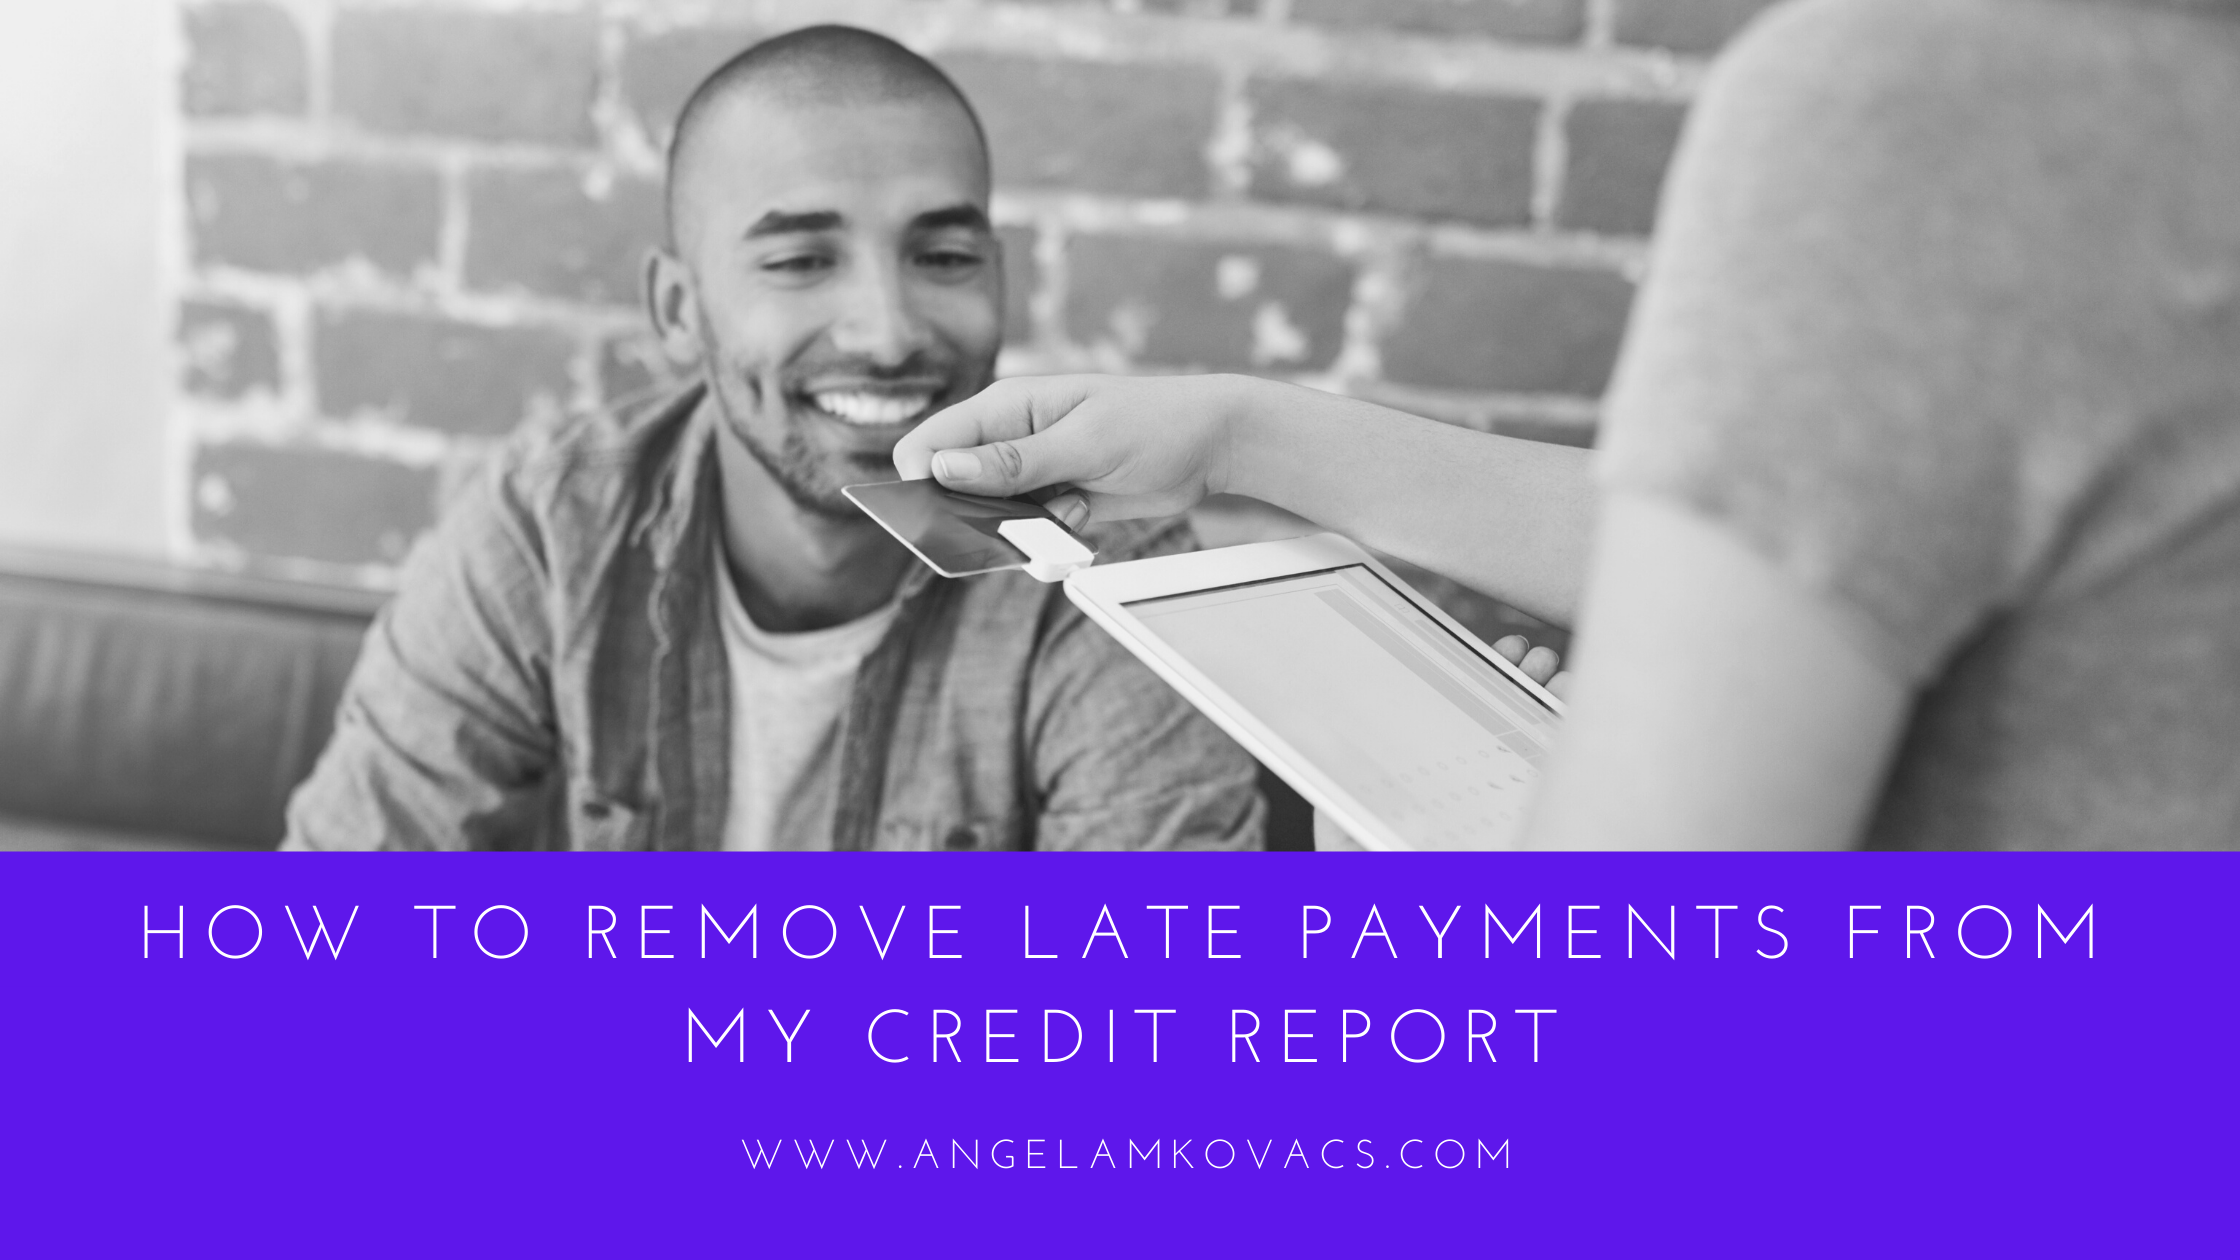 How to Remove Late Payments from My Credit Report